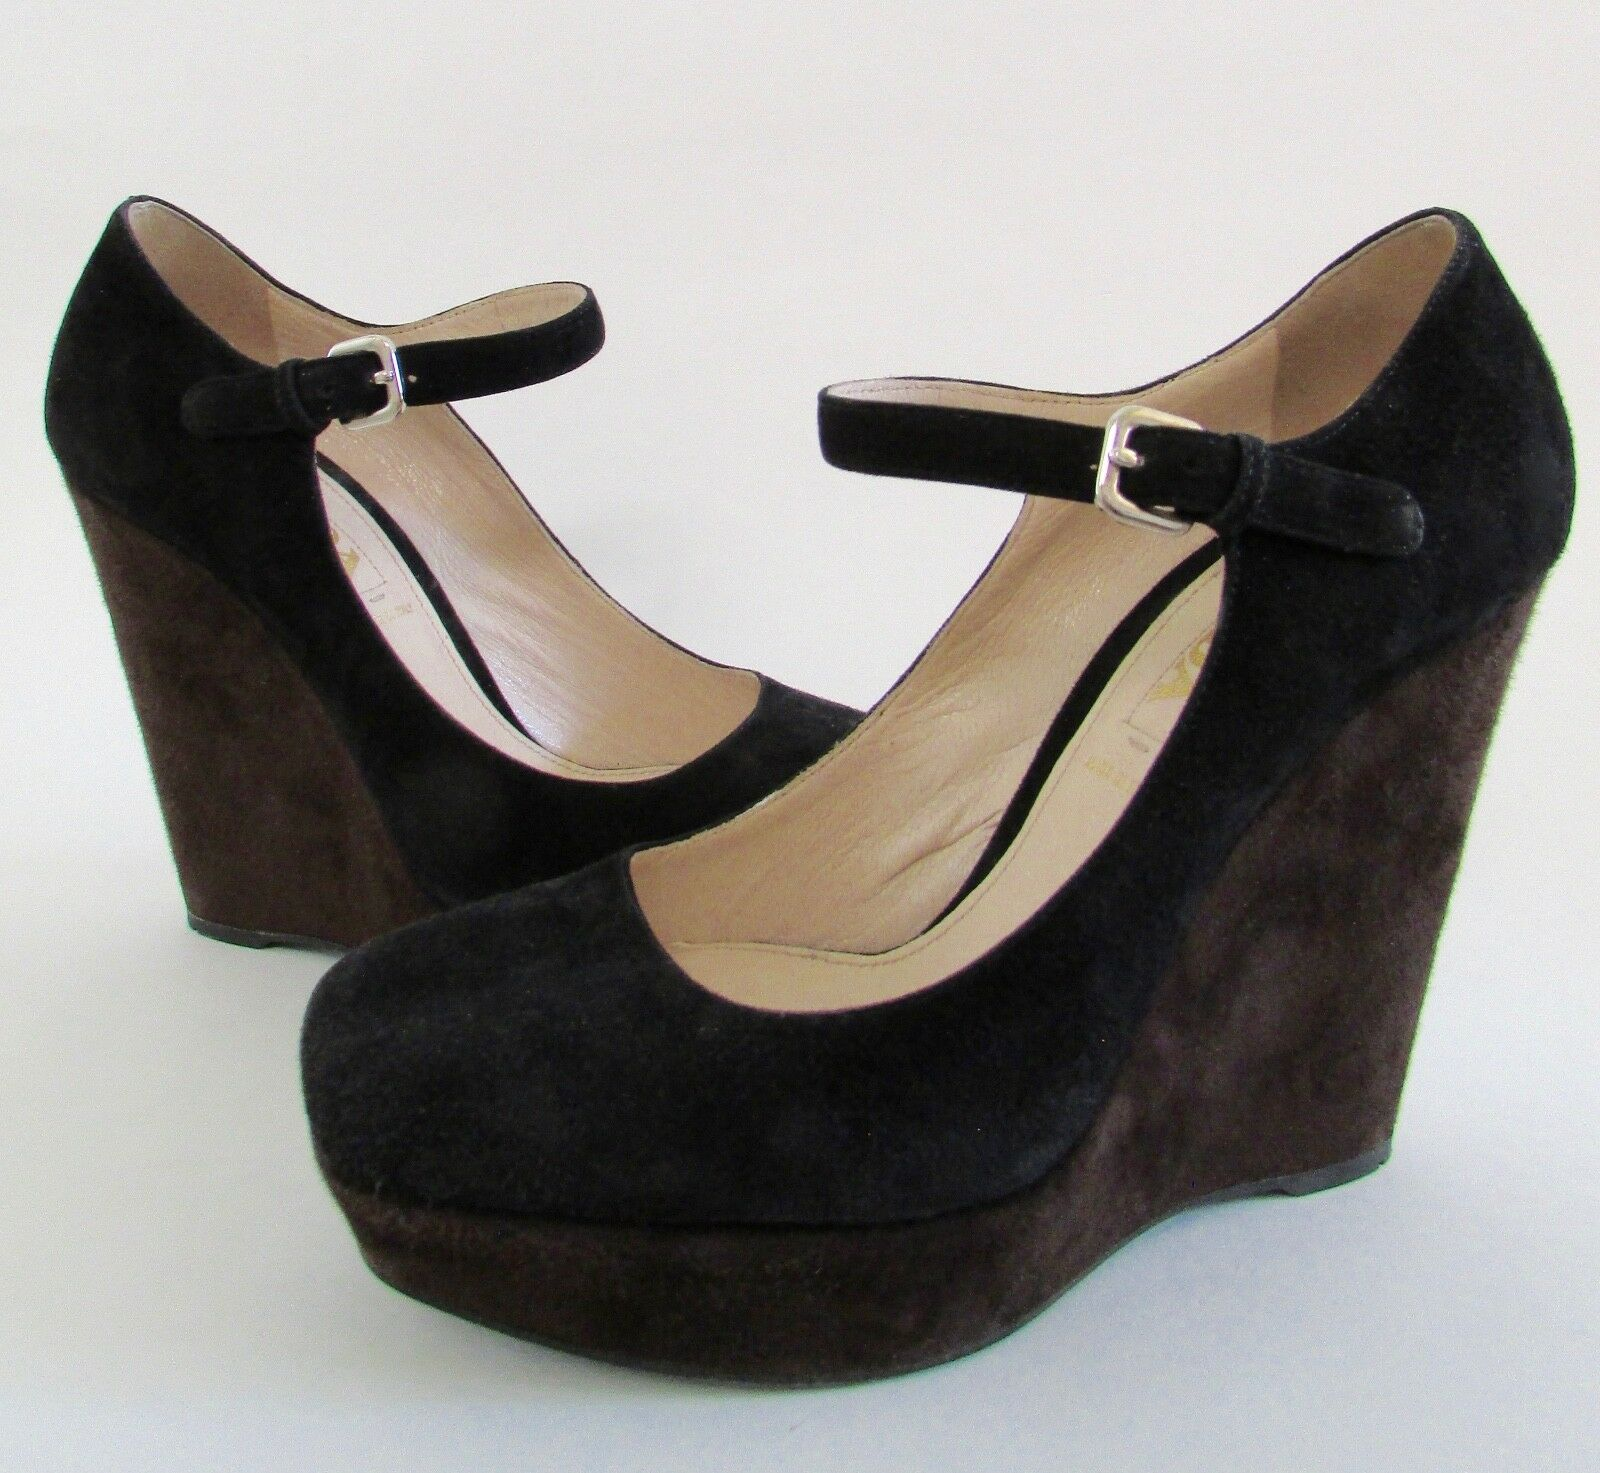 720 PRADA Black Brown Two-Tone Suede Mary Jane Wedge Sz 7